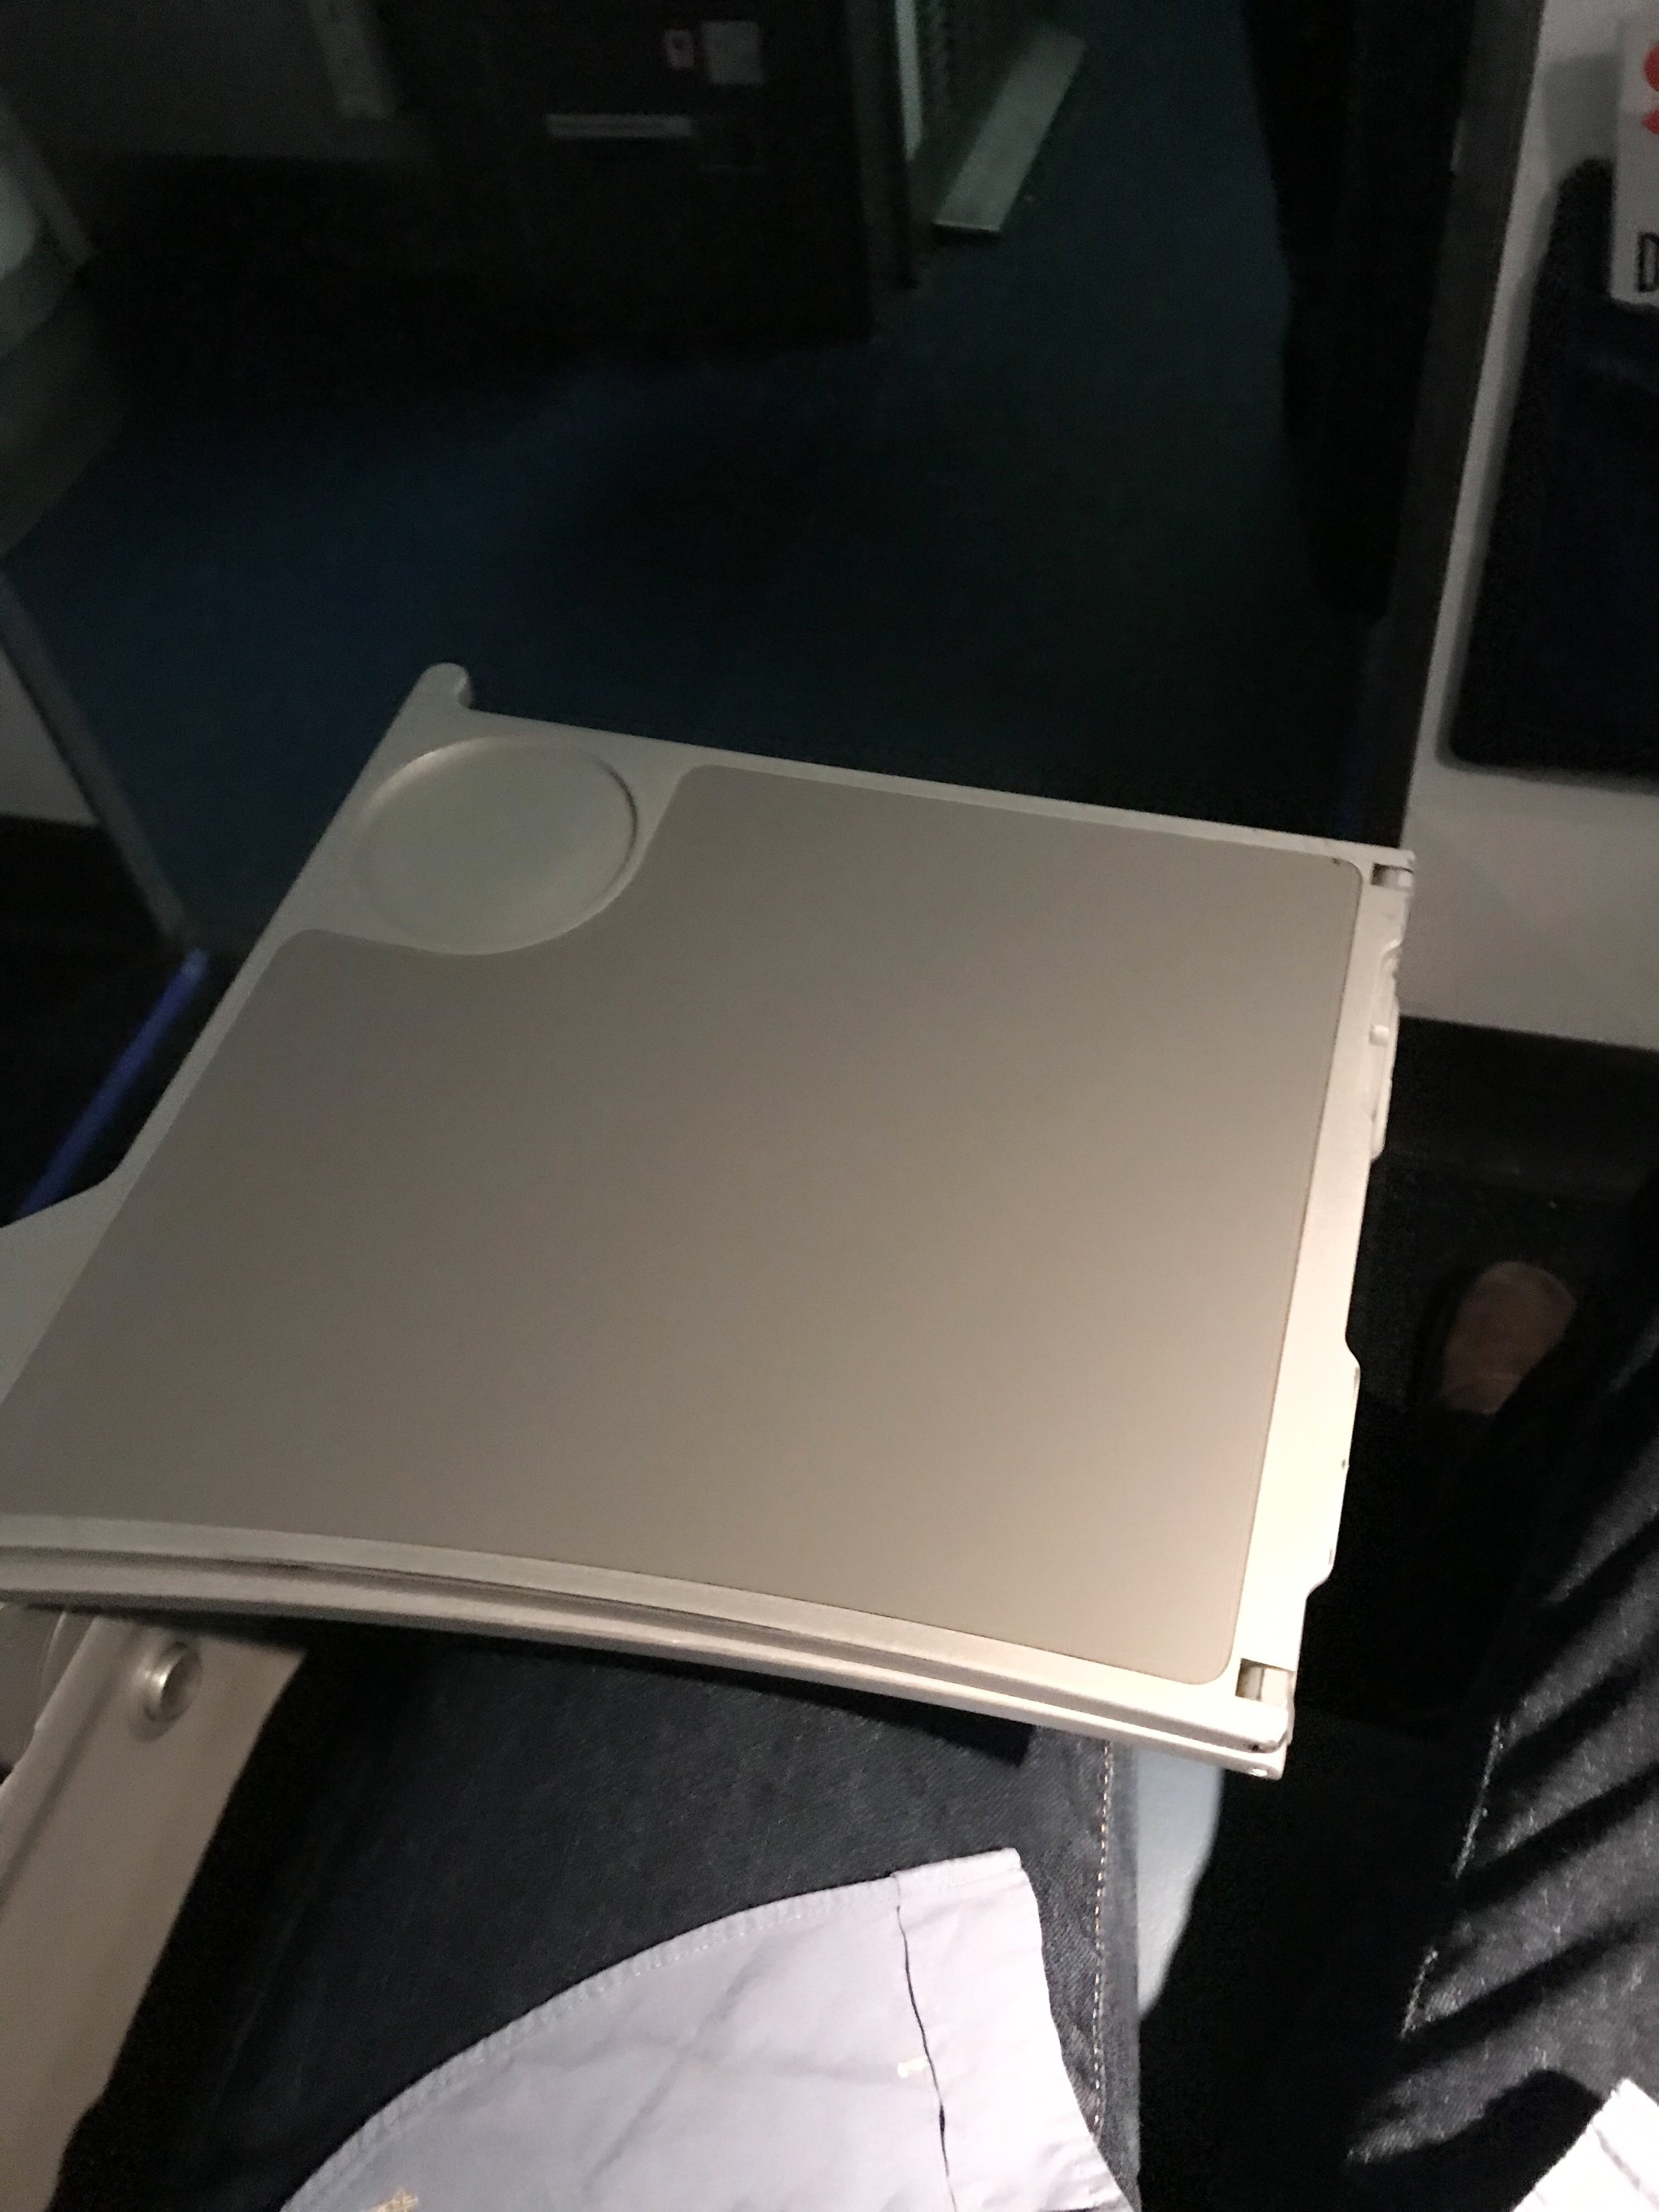 The tray table folds out of the armrest.